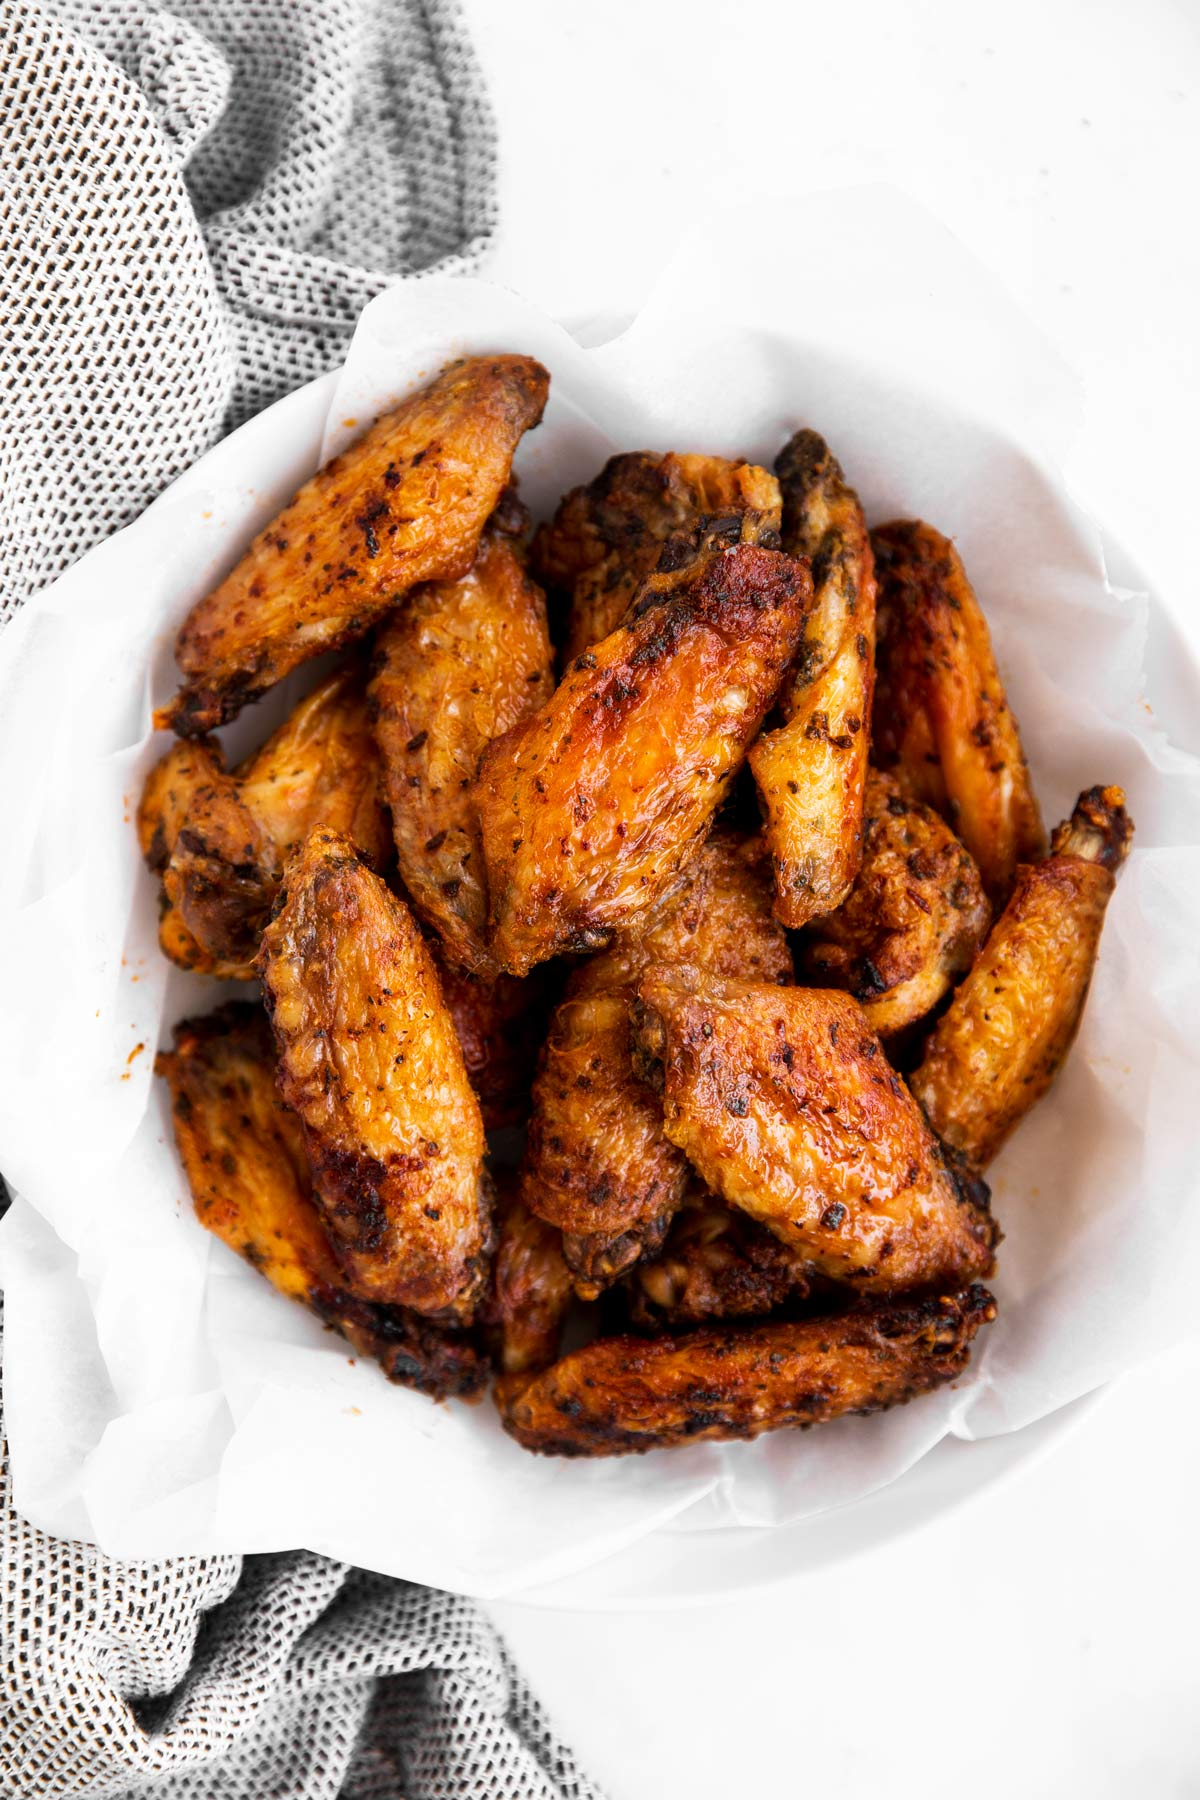 overhead view of chicken wings in a white bowl